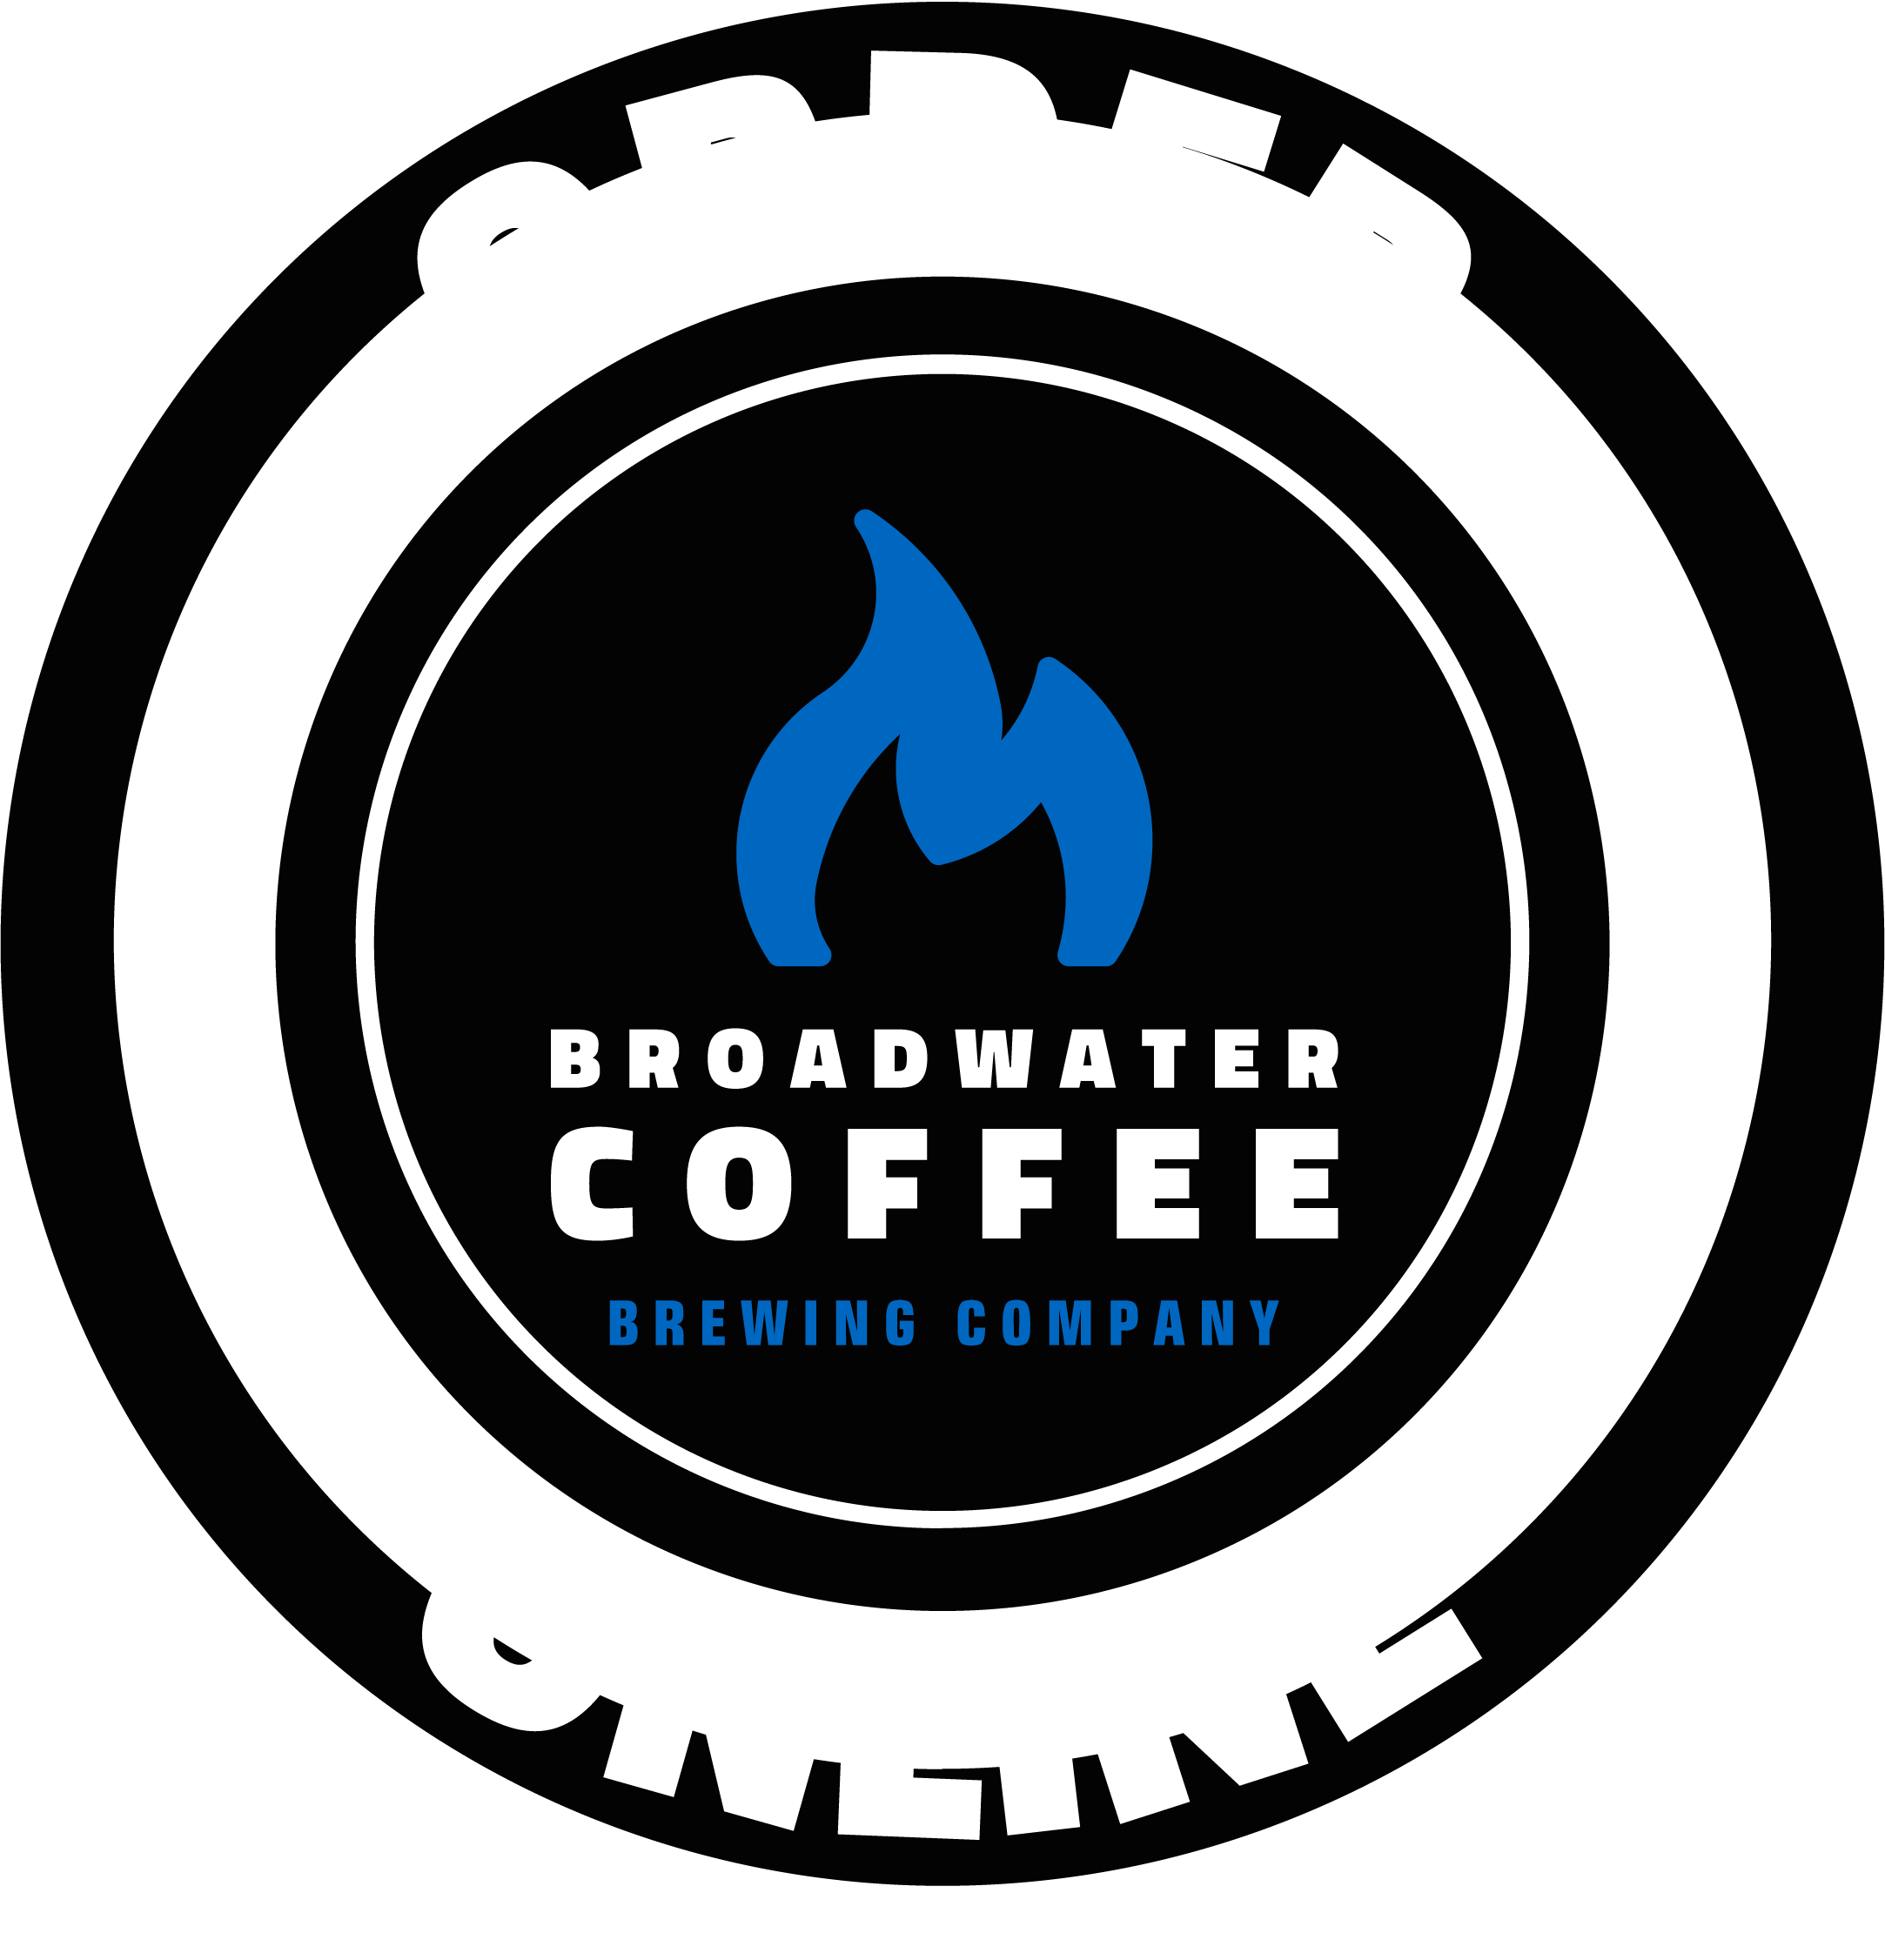 Order Online from Broadwater Coffee